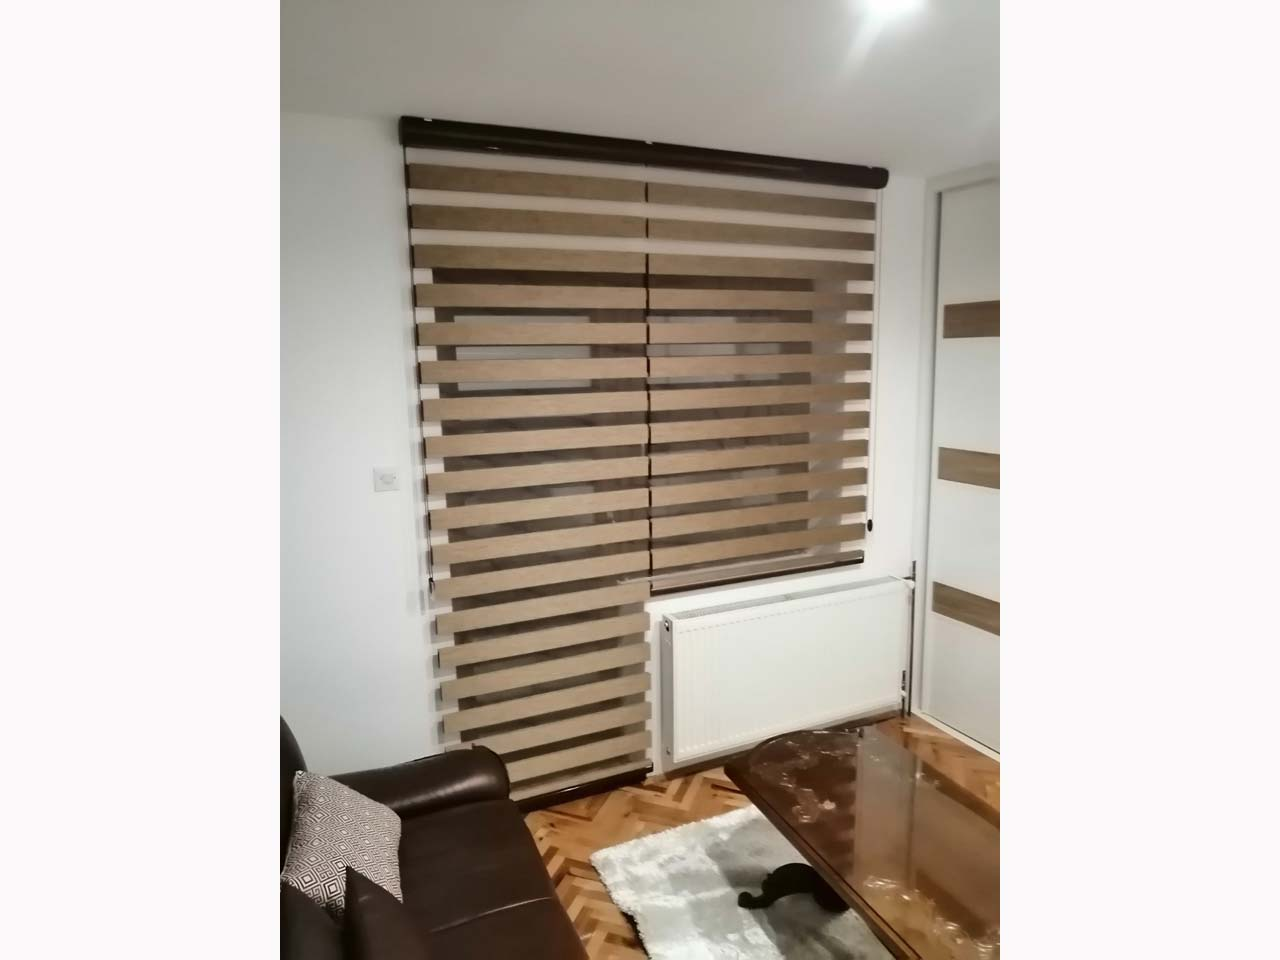 CURTAIN ROLLER BLINDS M ROLL  Awnings, Venetian Blinds, Blinds Kragujevac - Photo 2